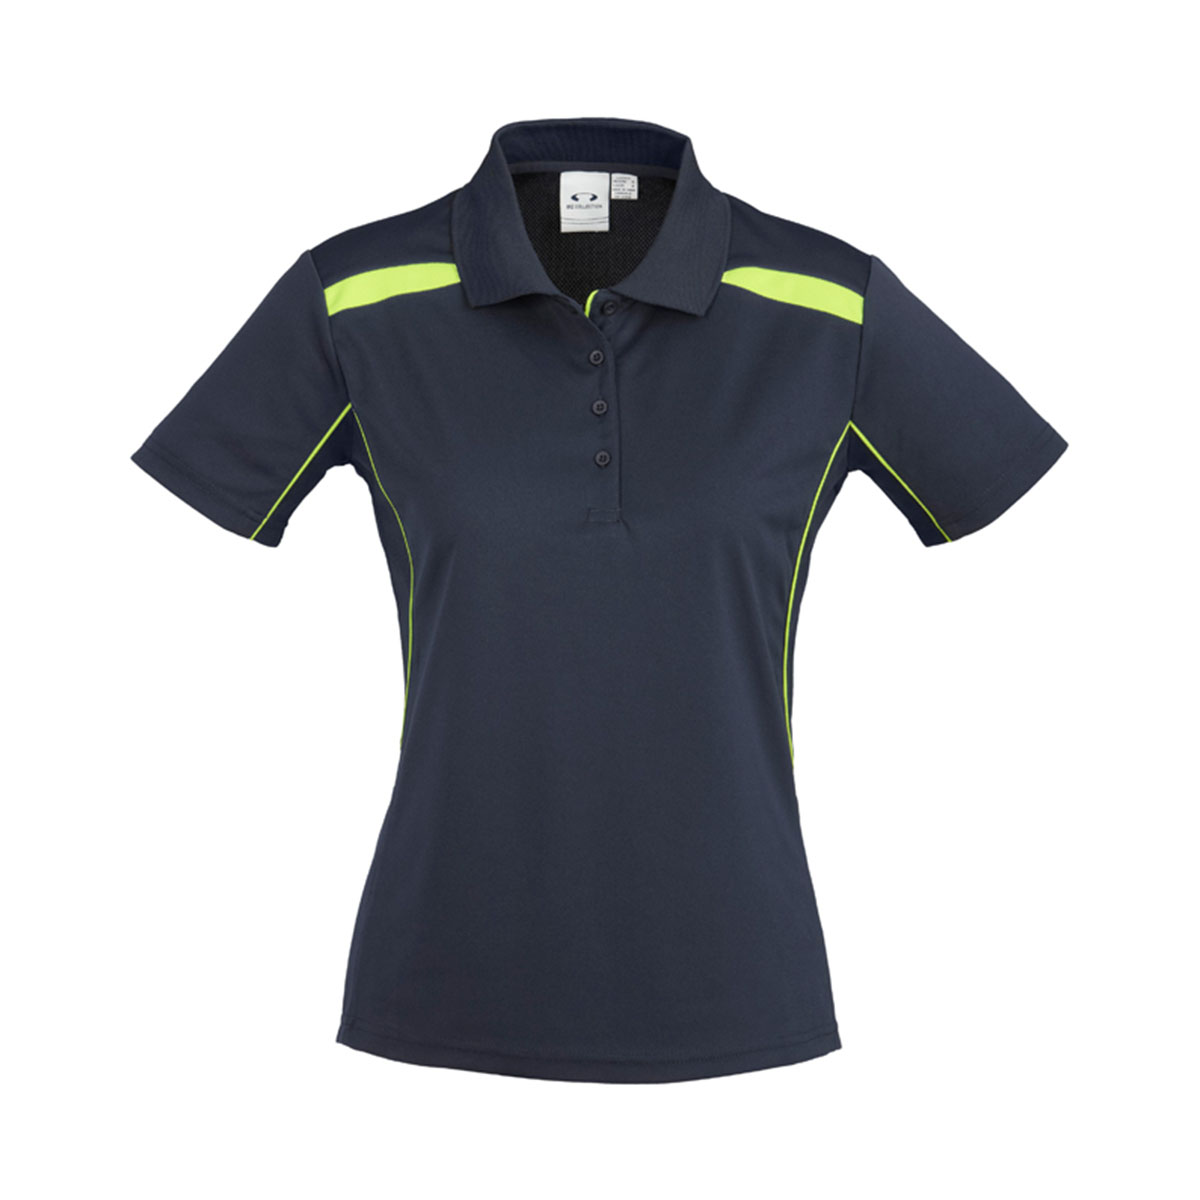 Ladies United Short Sleeve Polo-Navy / Lime